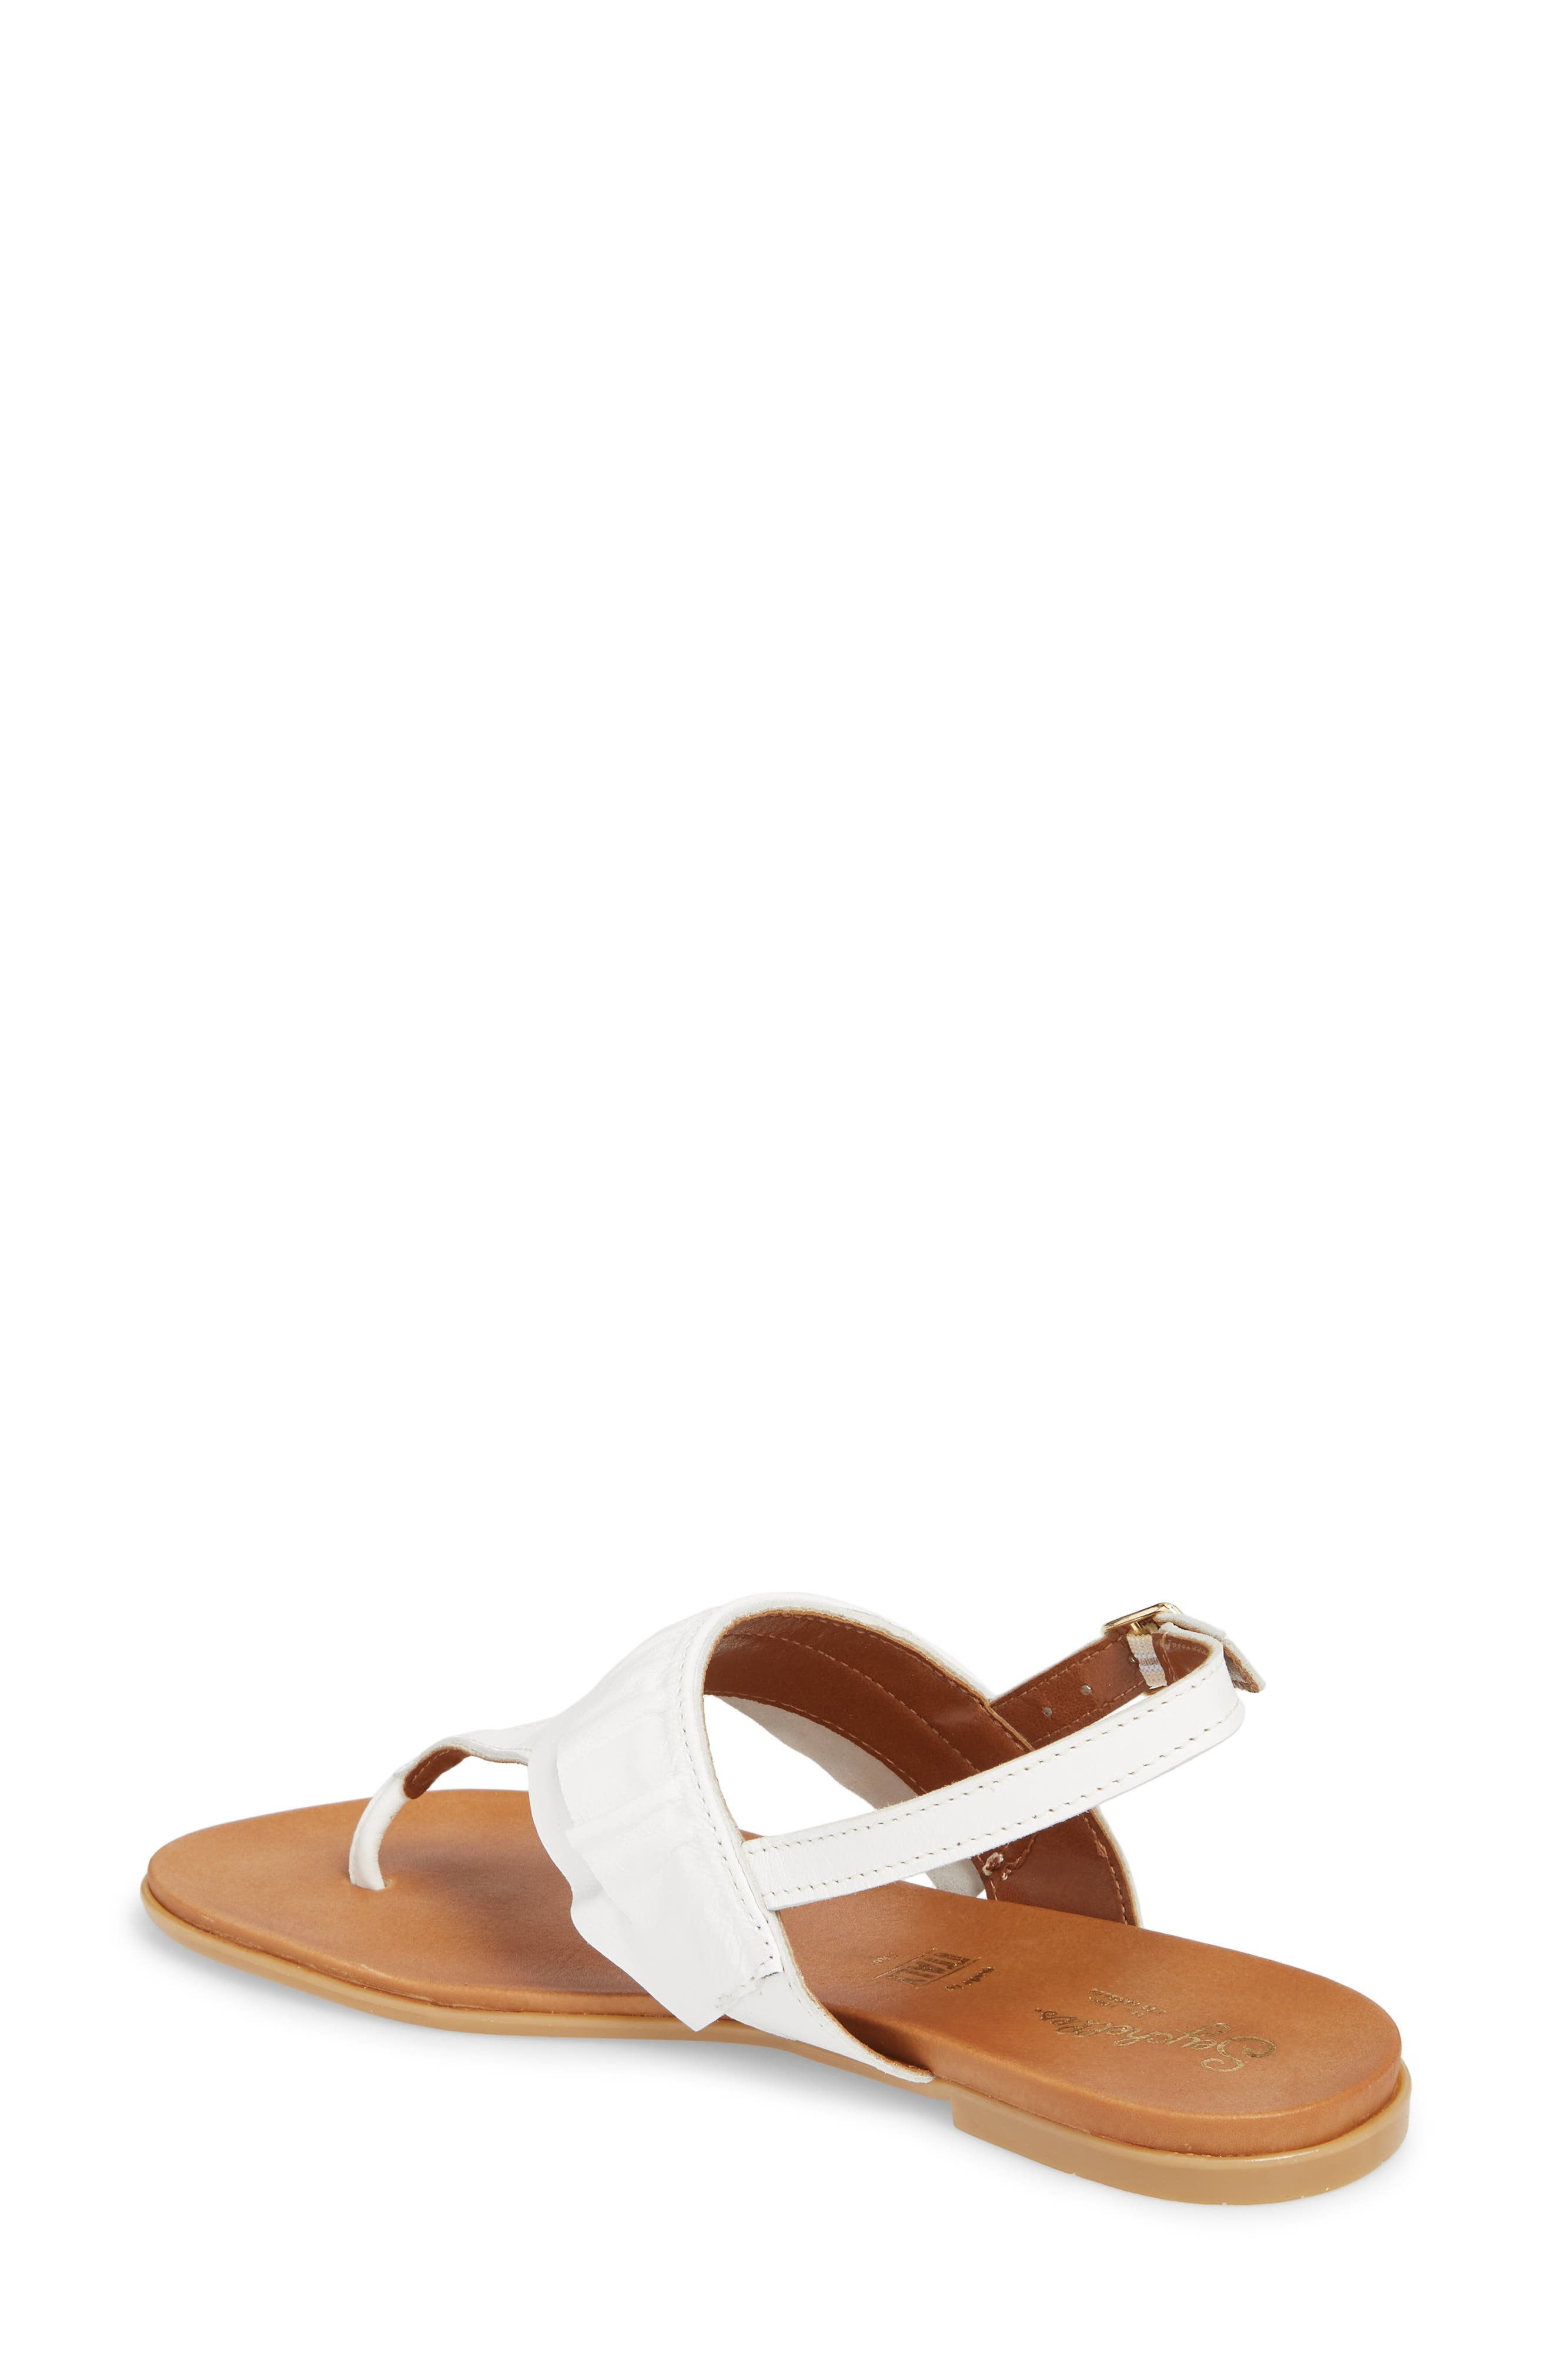 Seclusion Ruffle Sandal,                             Alternate thumbnail 2, color,                             White Leather